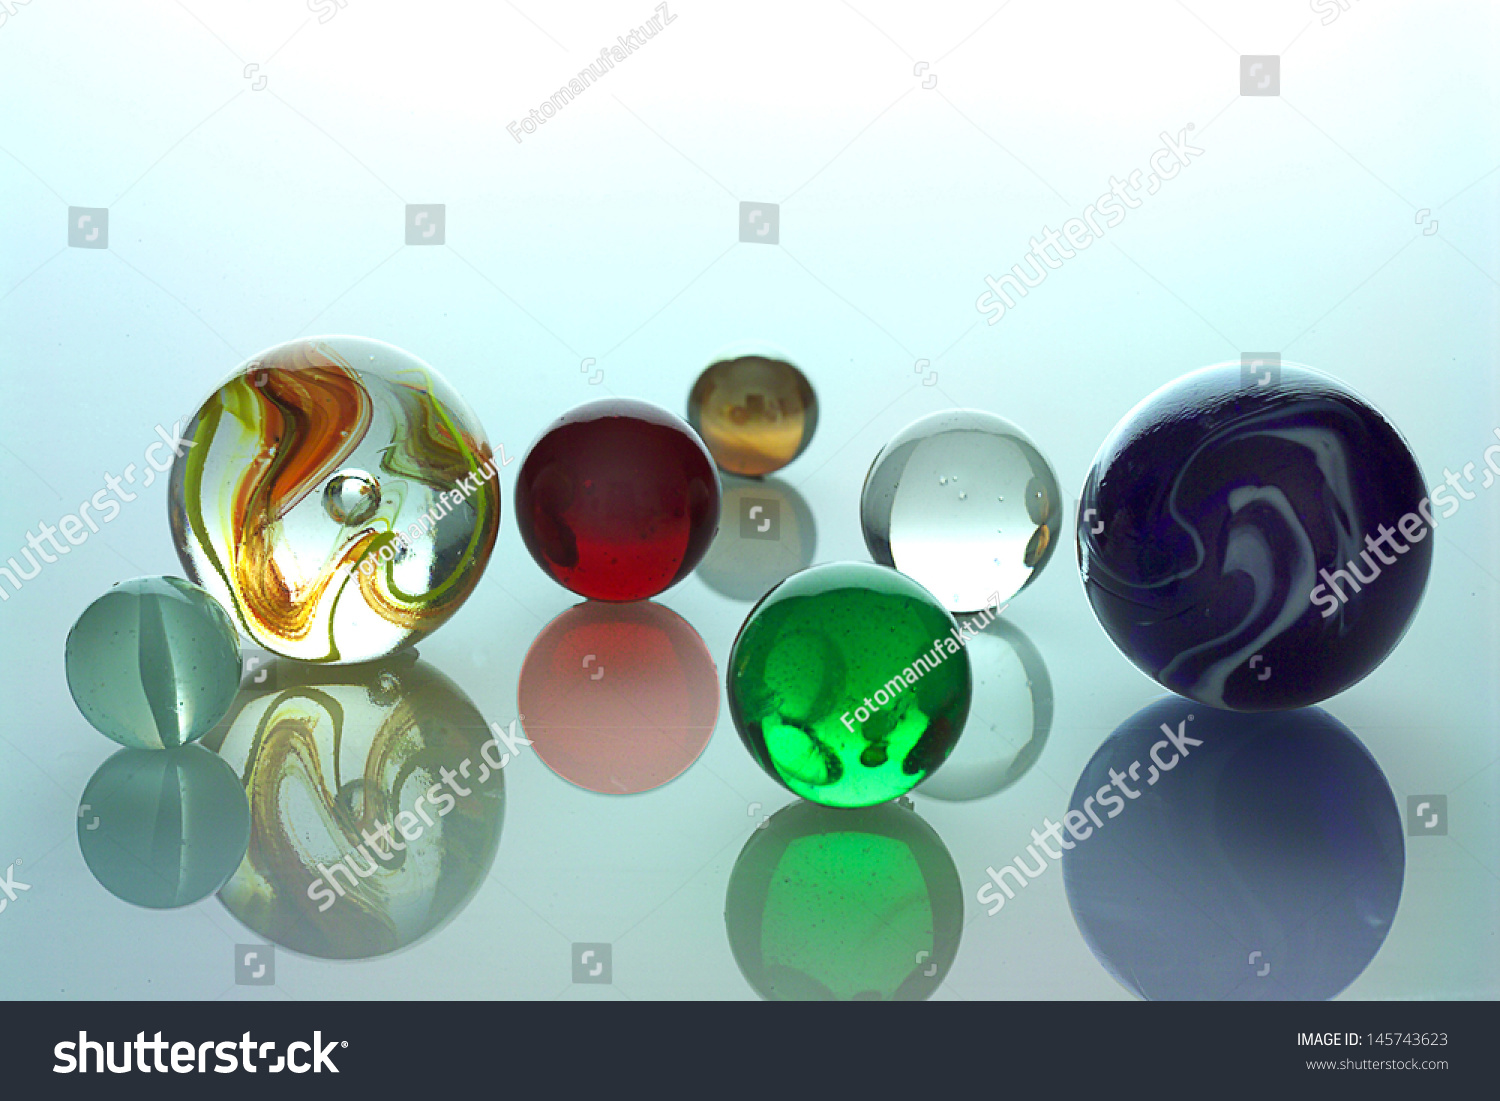 Several Different Colored Glass Balls On Spiegelflaeche Stock Photo 145743623 : Shutterstock